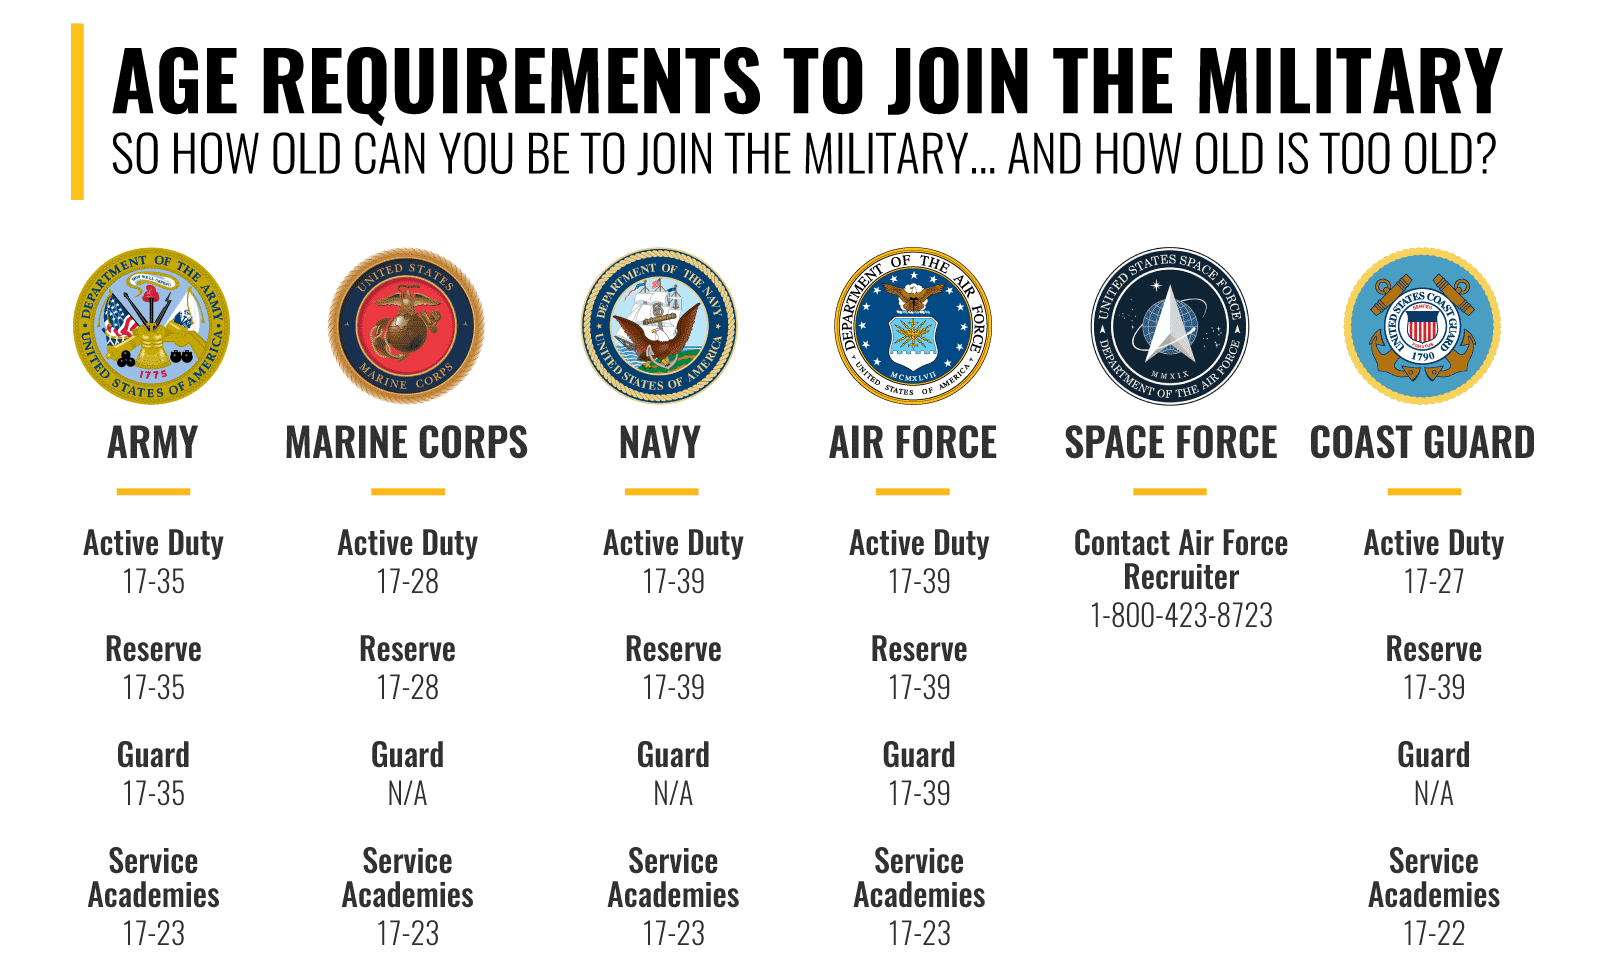 Age Requirements to Join the Military